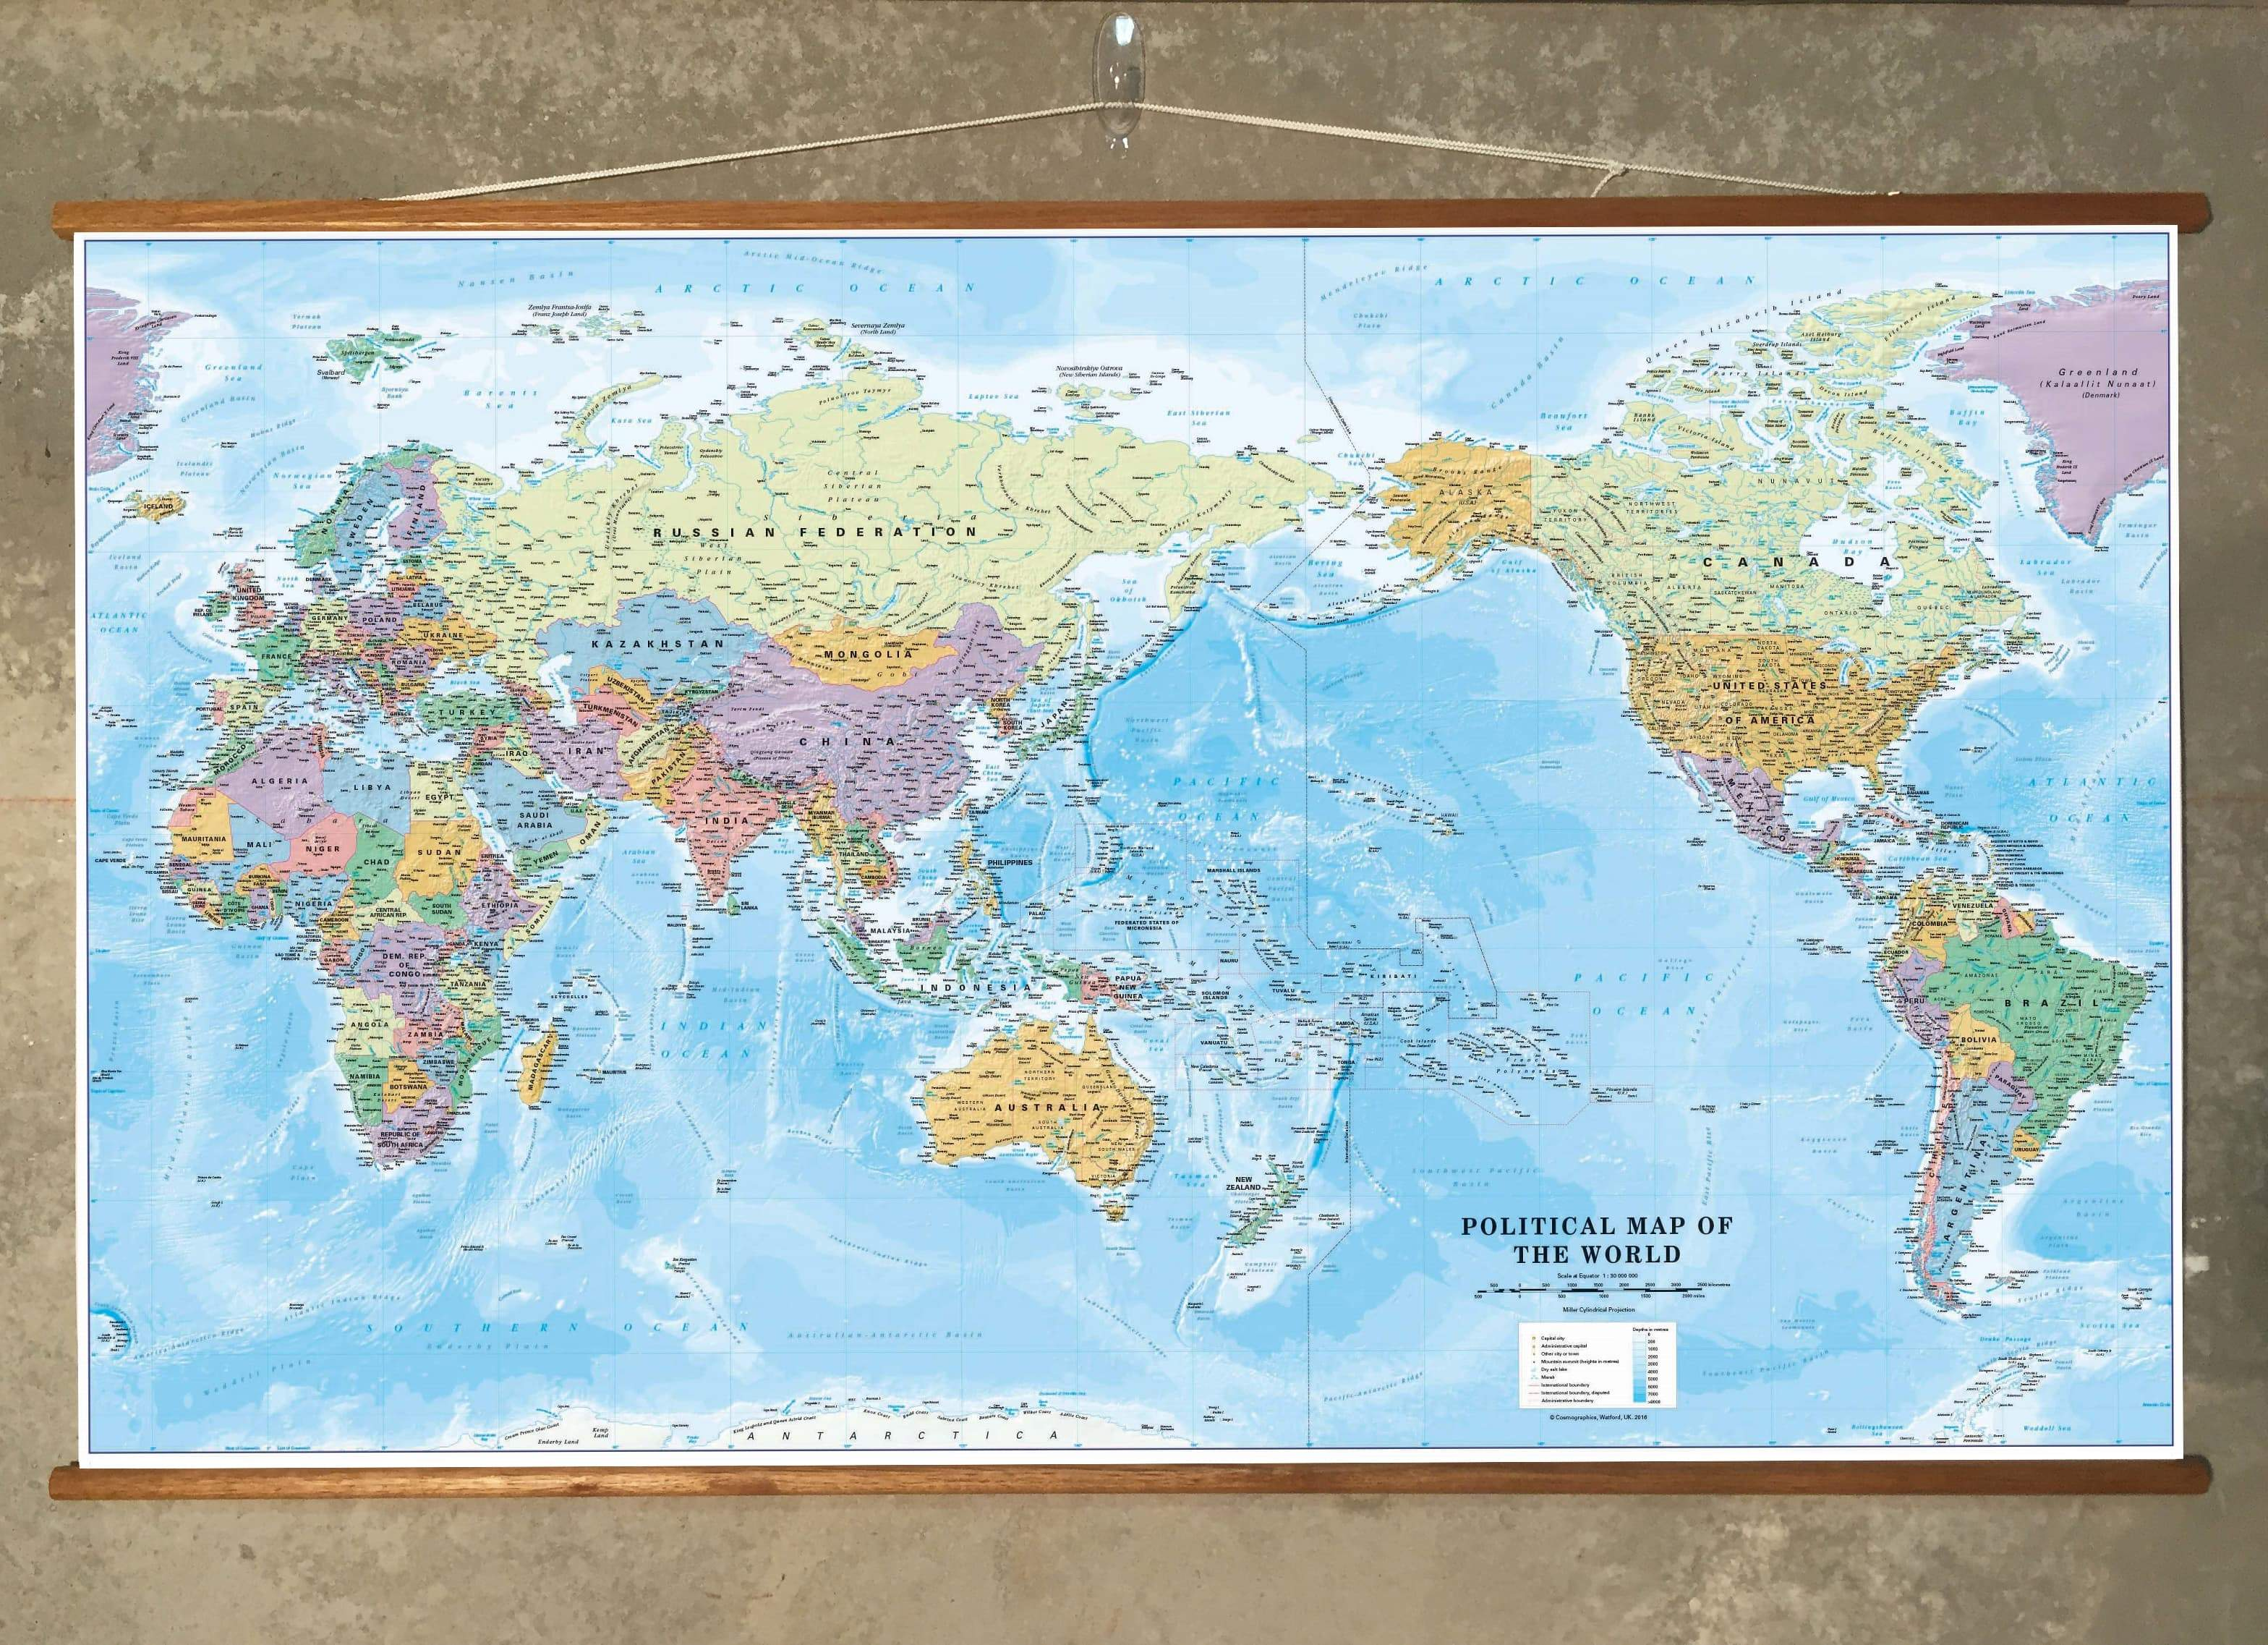 World Political Supermap on Canvas 1355x 790mm (Pacific) with FREE on earth map canvas, old world map canvas, map wall art, ikea world map canvas, united states map canvas,